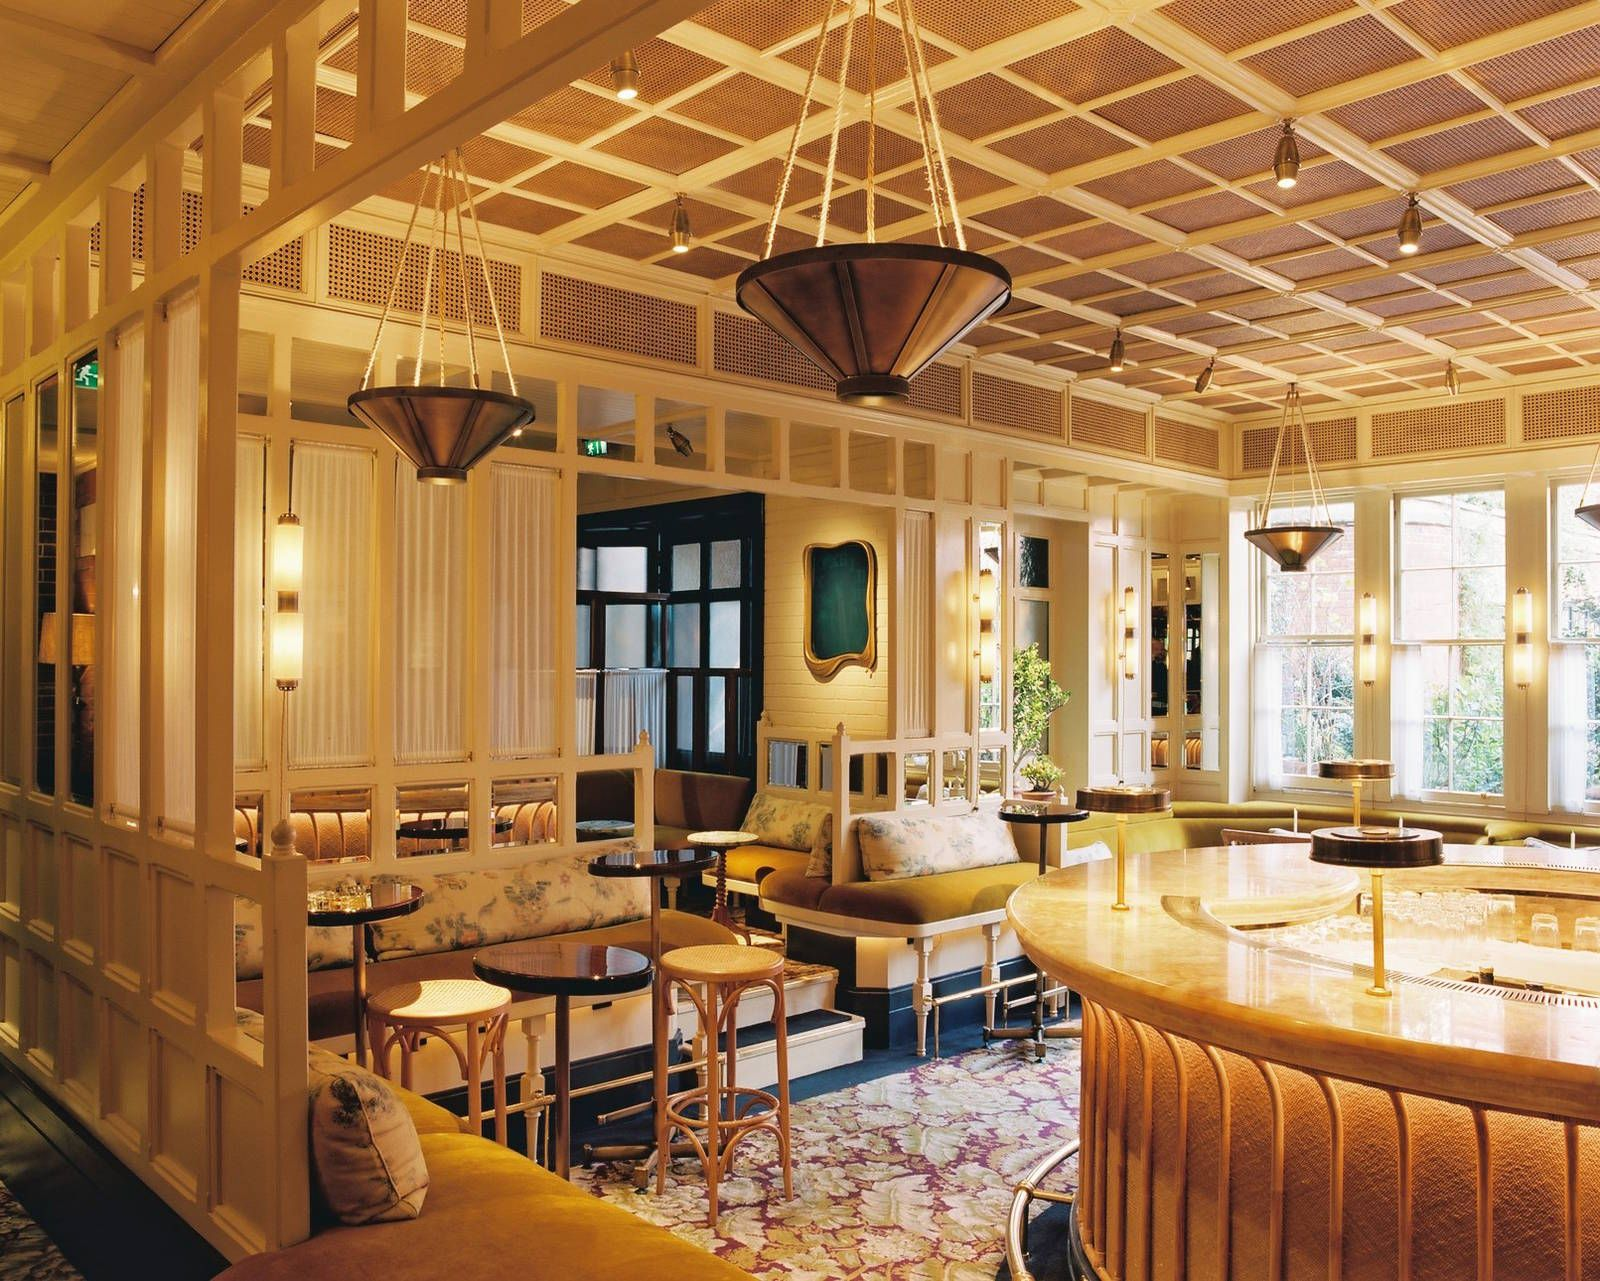 London Luxury Hotels Overview Chiltern Firehouse In Marylebone